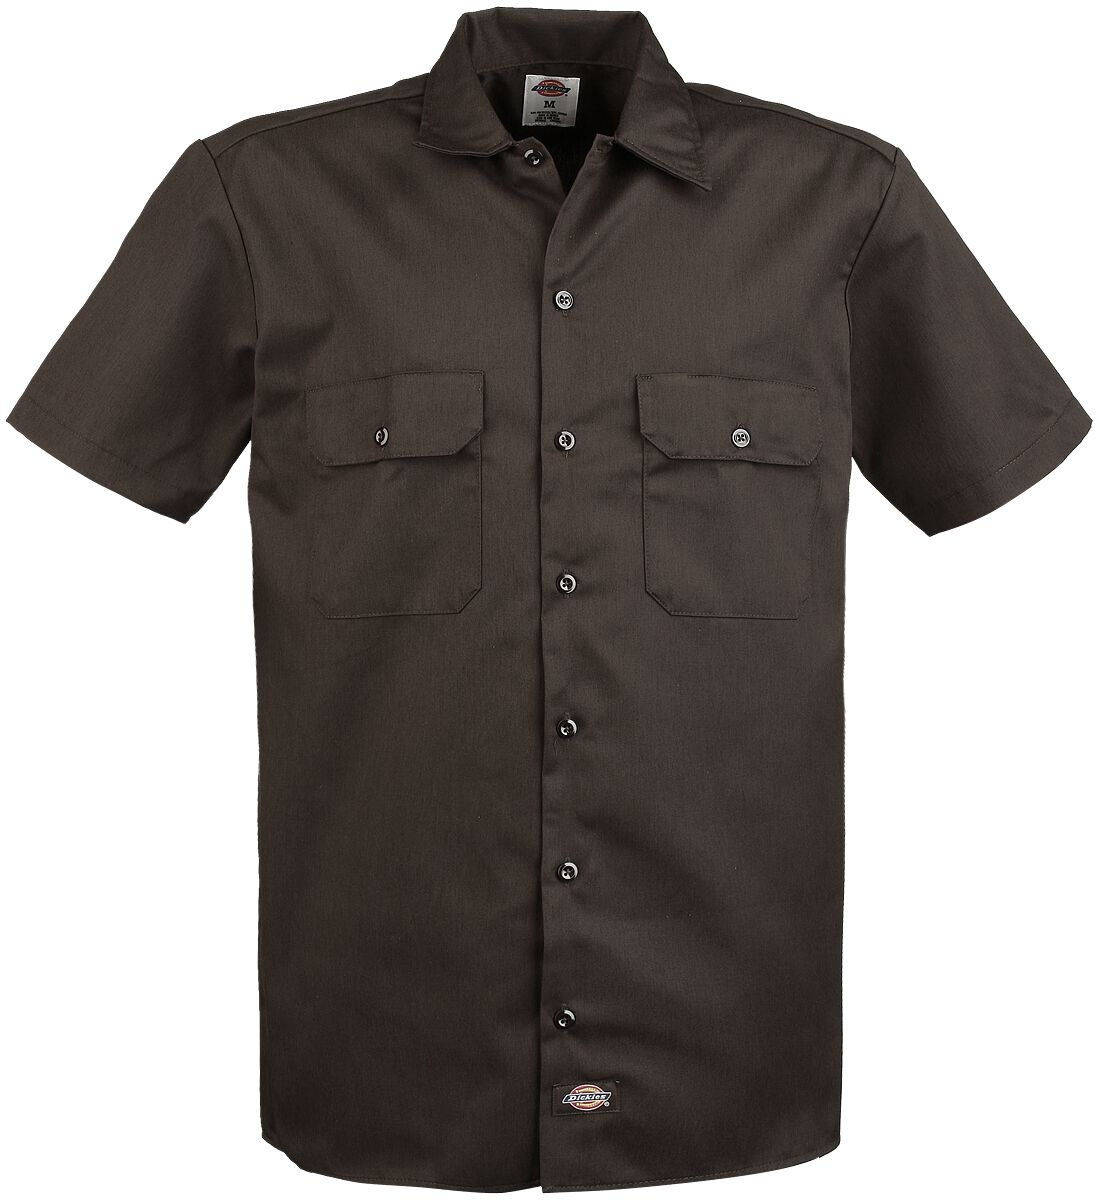 Image of   Dickies Short Sleeve Work Shirt Skjorte brun